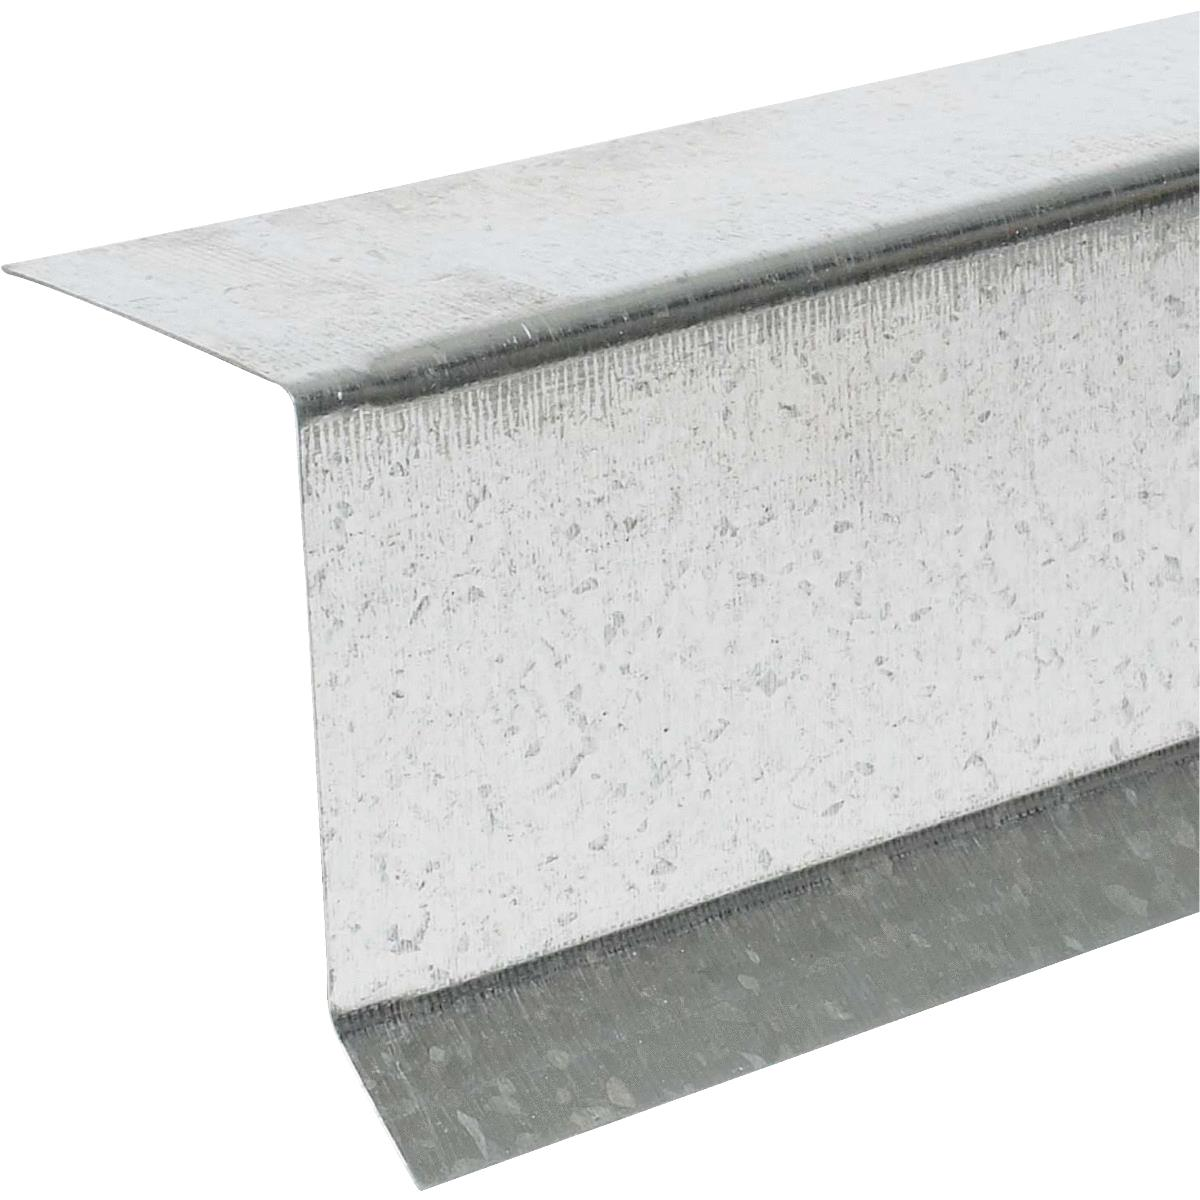 Amerimax Galvanized Roof & Drip Edge Flashing 5661600120